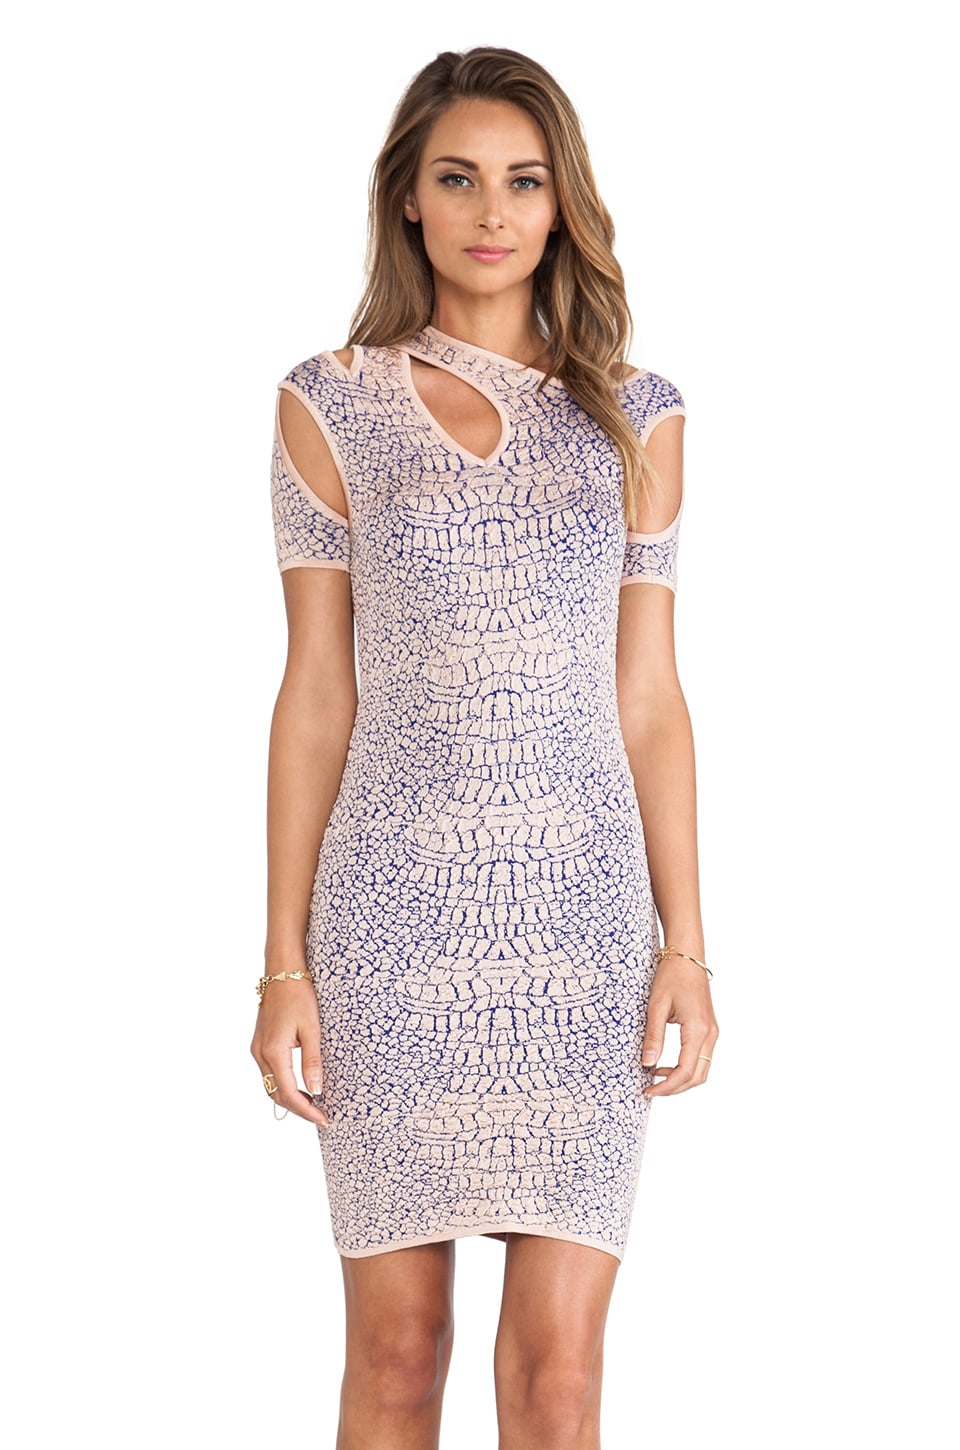 McQ Alexander McQueen Crocodile Flirty Dress in Tea Rose & Ultra Marine